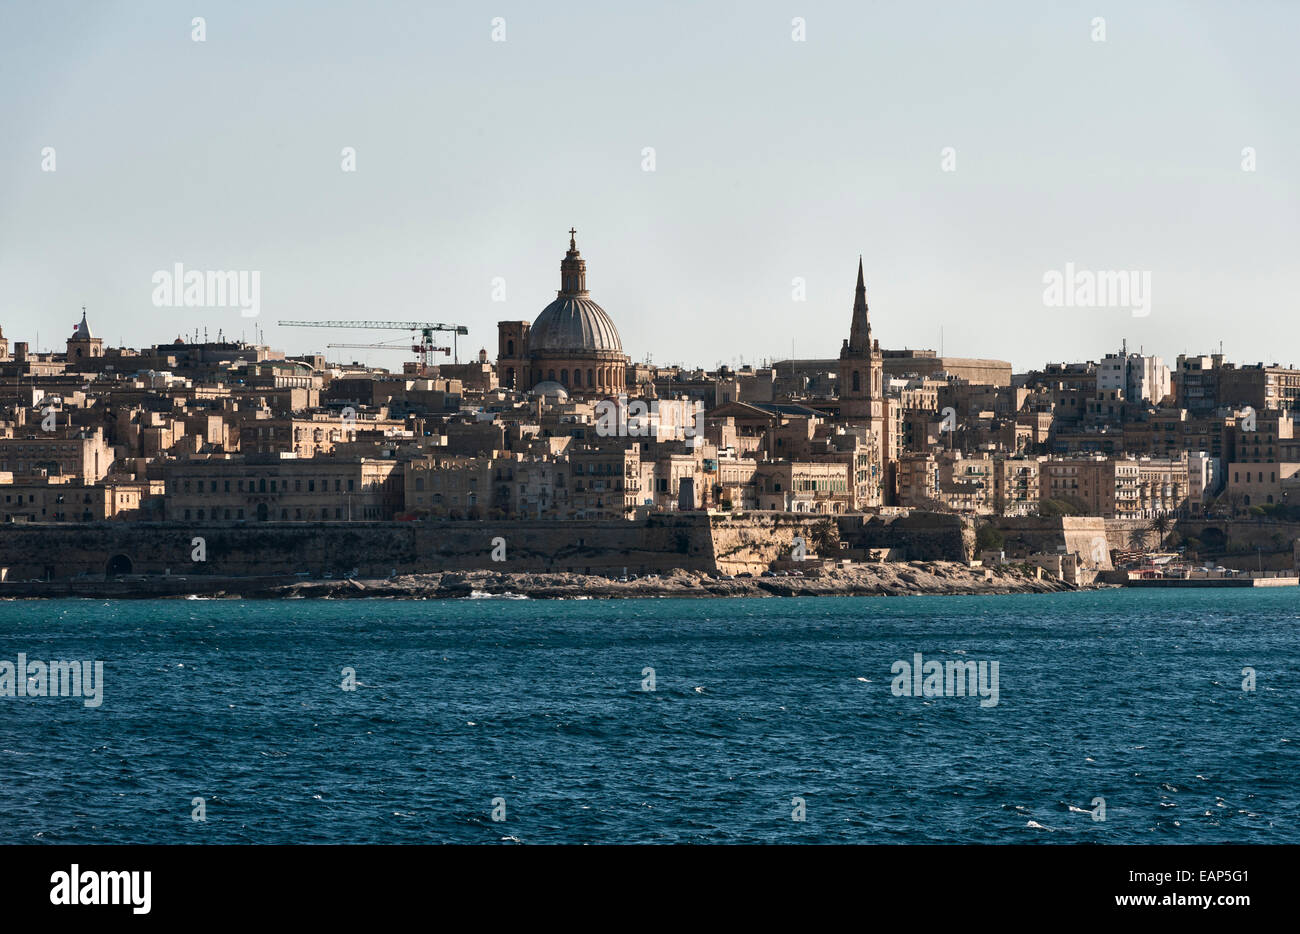 Kalkara, Malta, from the sea - at the entrance to the Grand Harbour, opposite Valletta - Stock Image